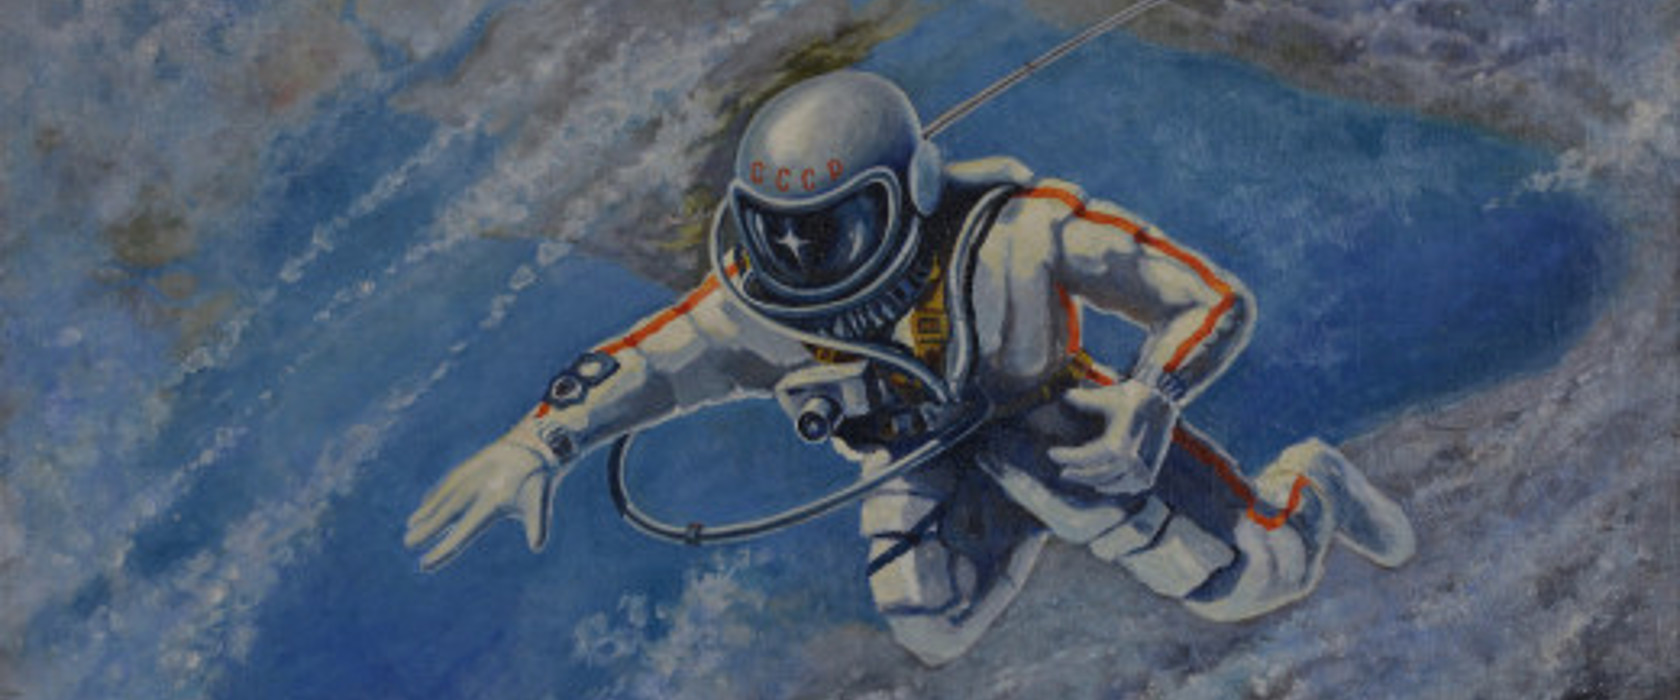 How did art influence Soviet space exploration?